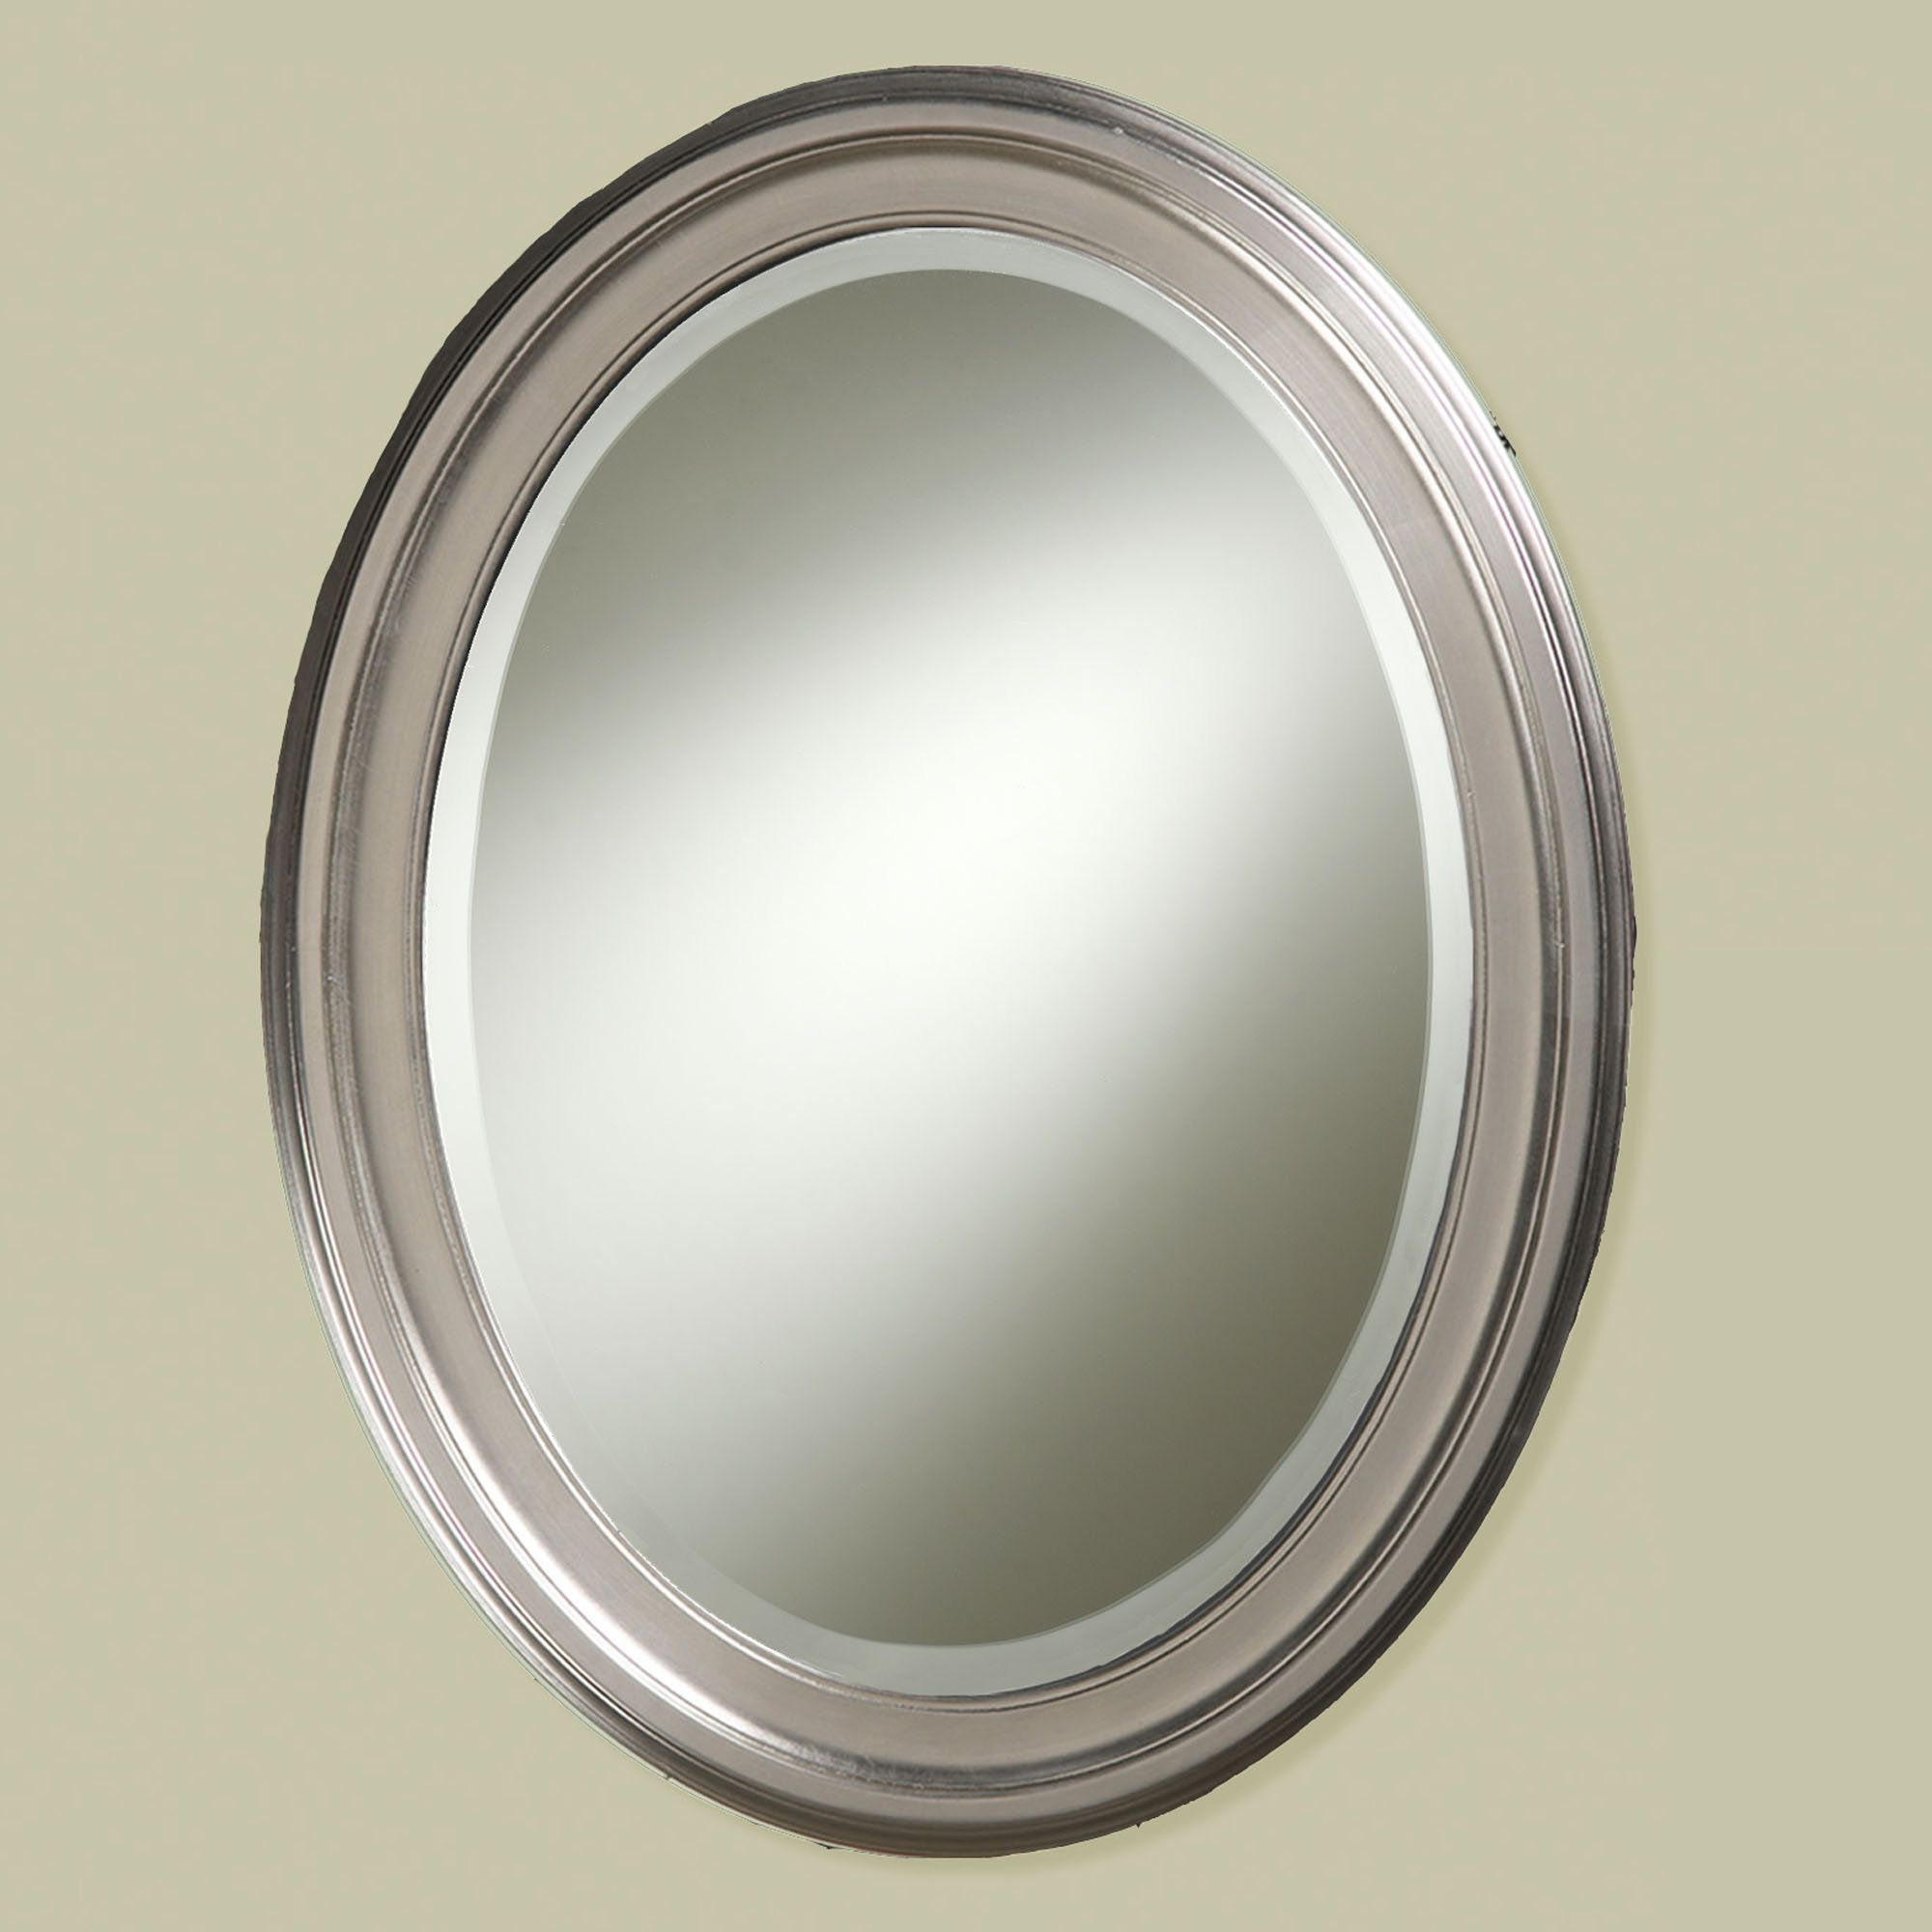 Brushed nickel oval bathroom mirror my web value Bathroom wall mirrors brushed nickel